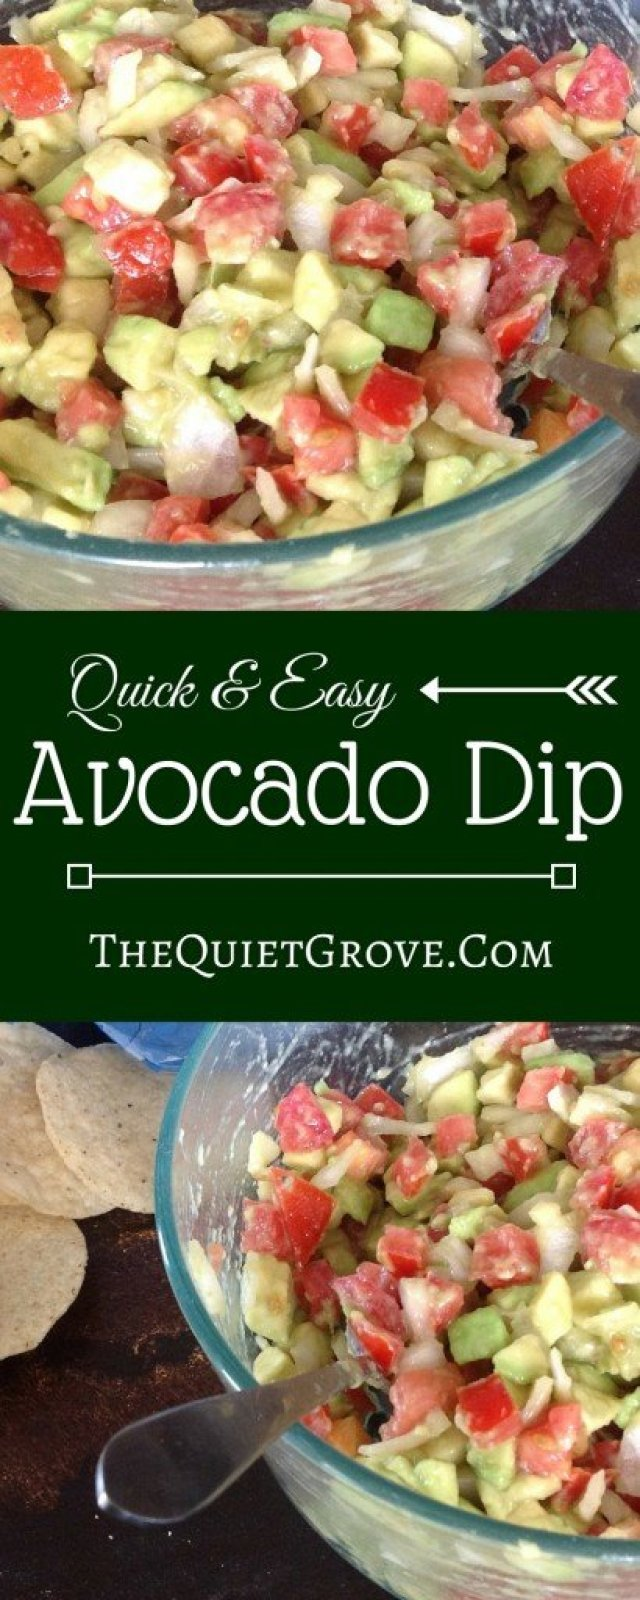 Quick & Easy Avocado Dip